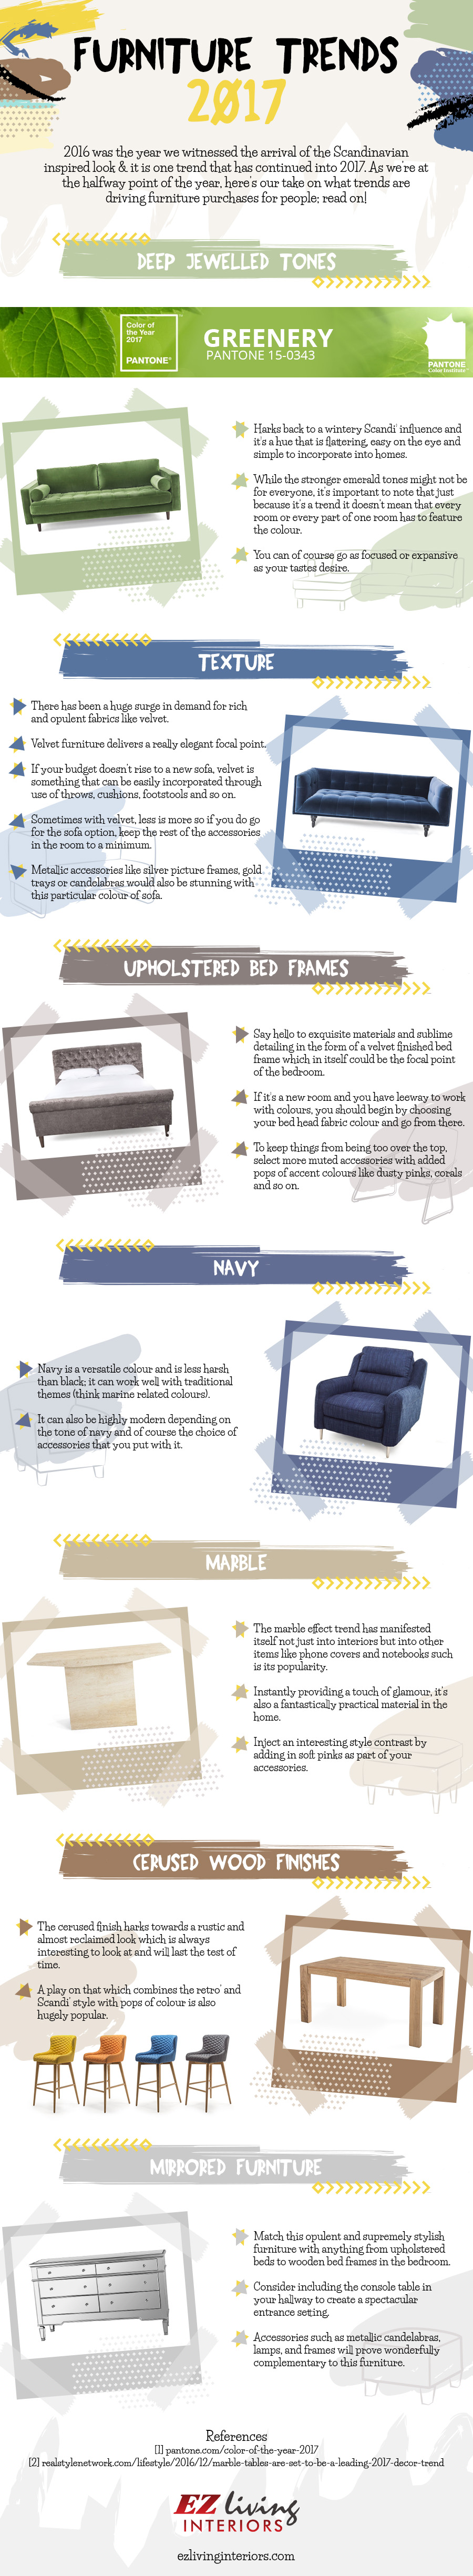 Future Furniture Trends 2017 Infographic